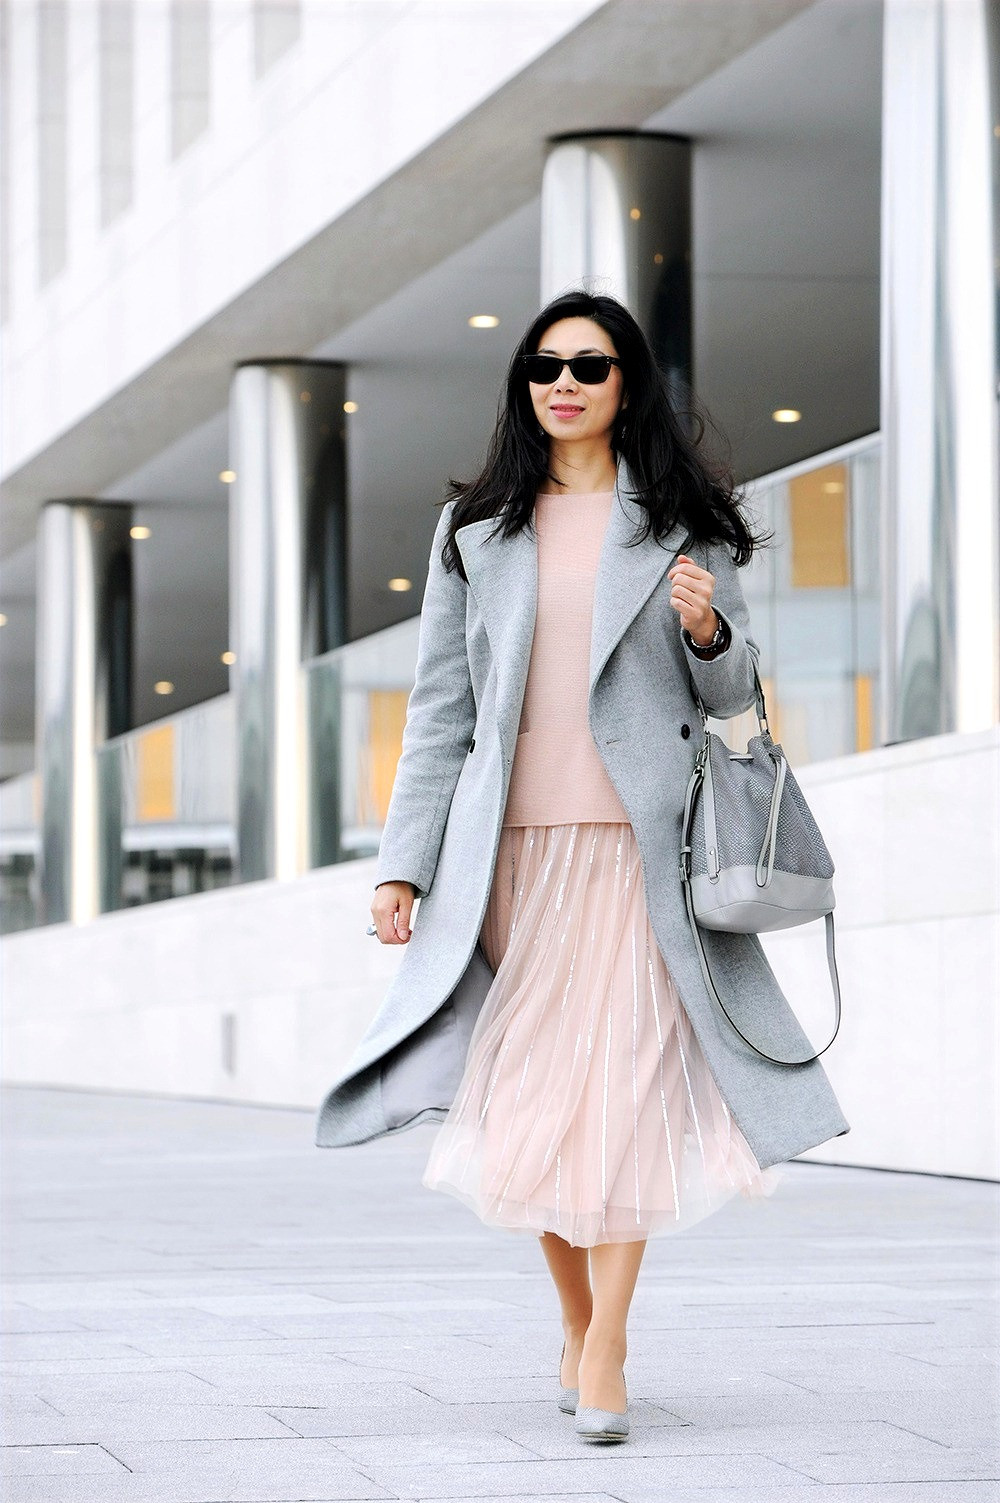 Business casual woman outfit with rose quartz tulle skirt from Needle & Thread and light grey wool coat from Karen Millen.